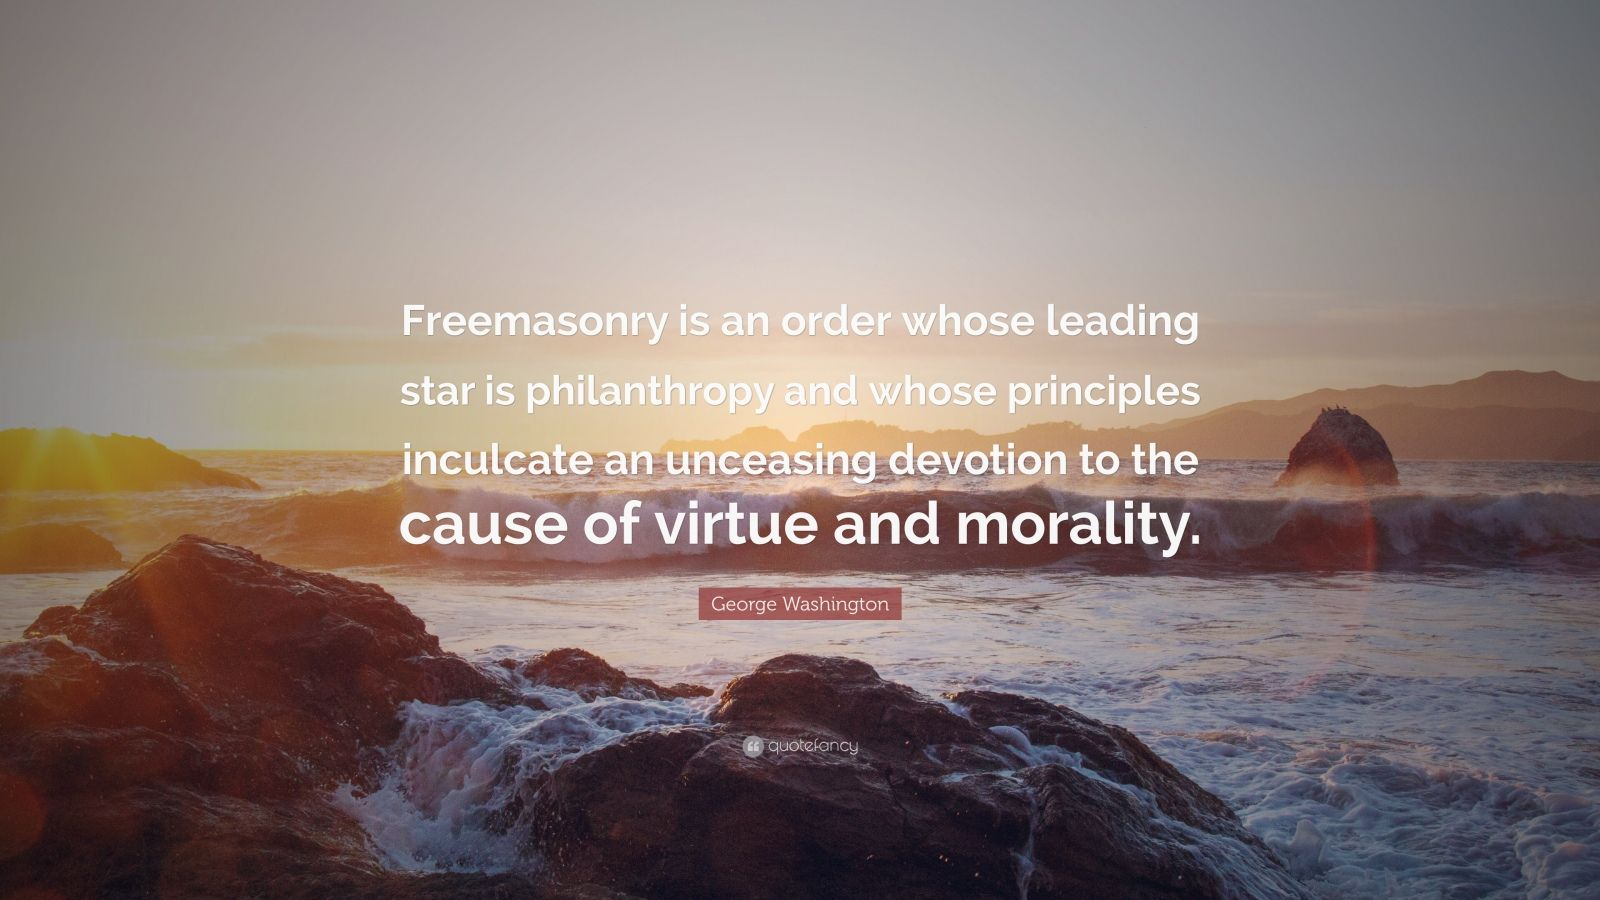 """George Washington Quote: """"Freemasonry is an order whose leading star is philanthropy and whose principles inculcate an unceasing devotion to the cause of virtue and morality."""""""